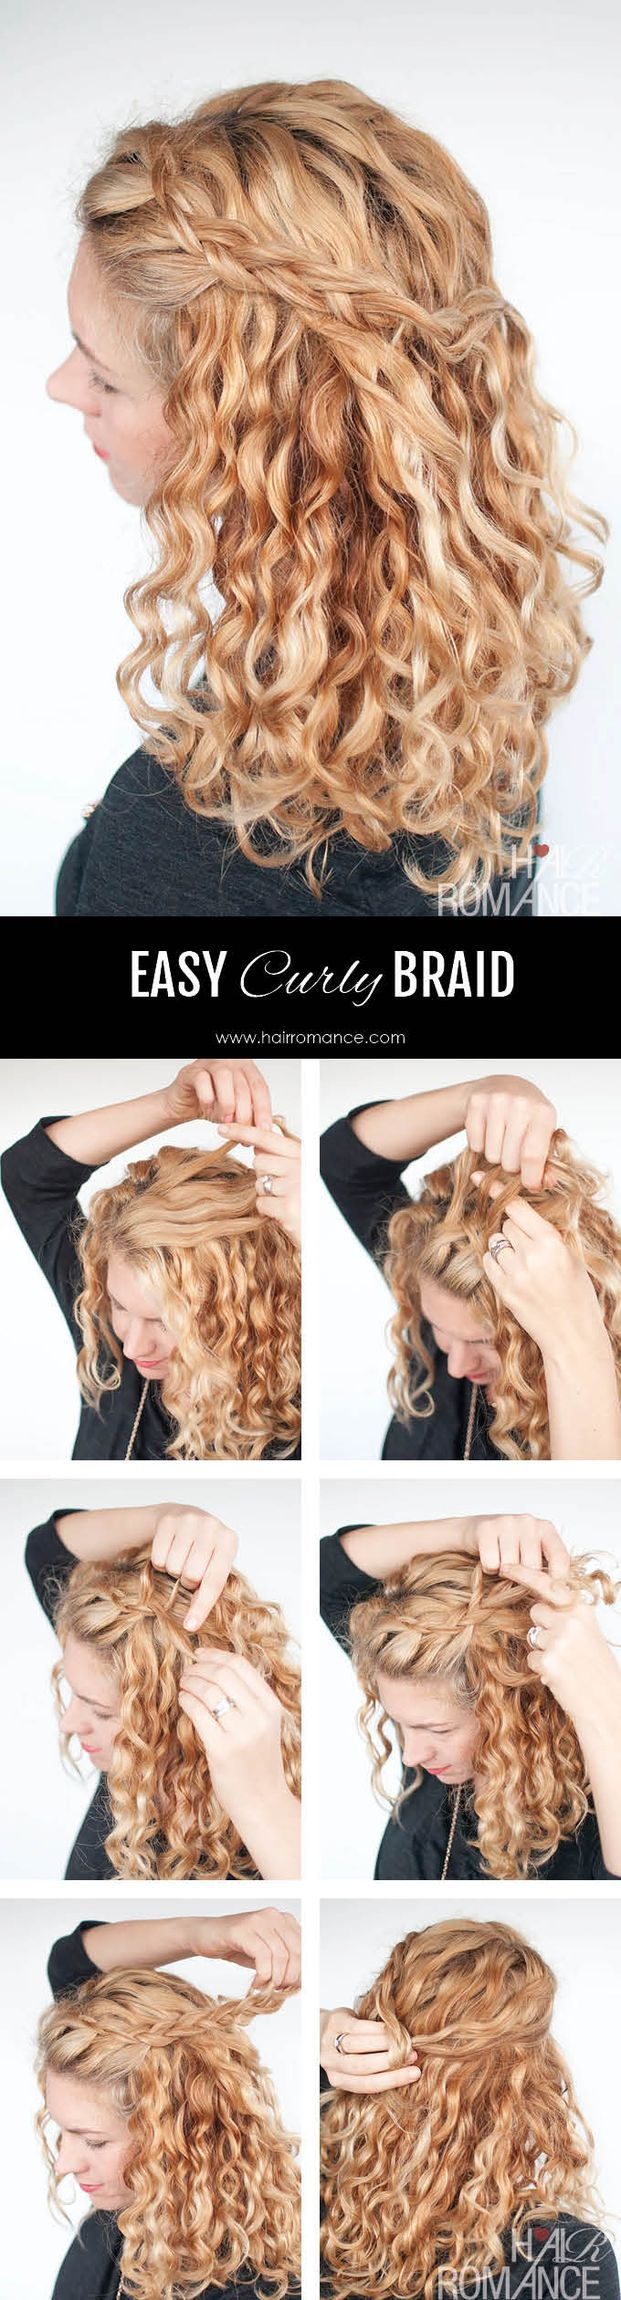 185 best live for the Curls images on Pinterest | Hairstyle ideas ...